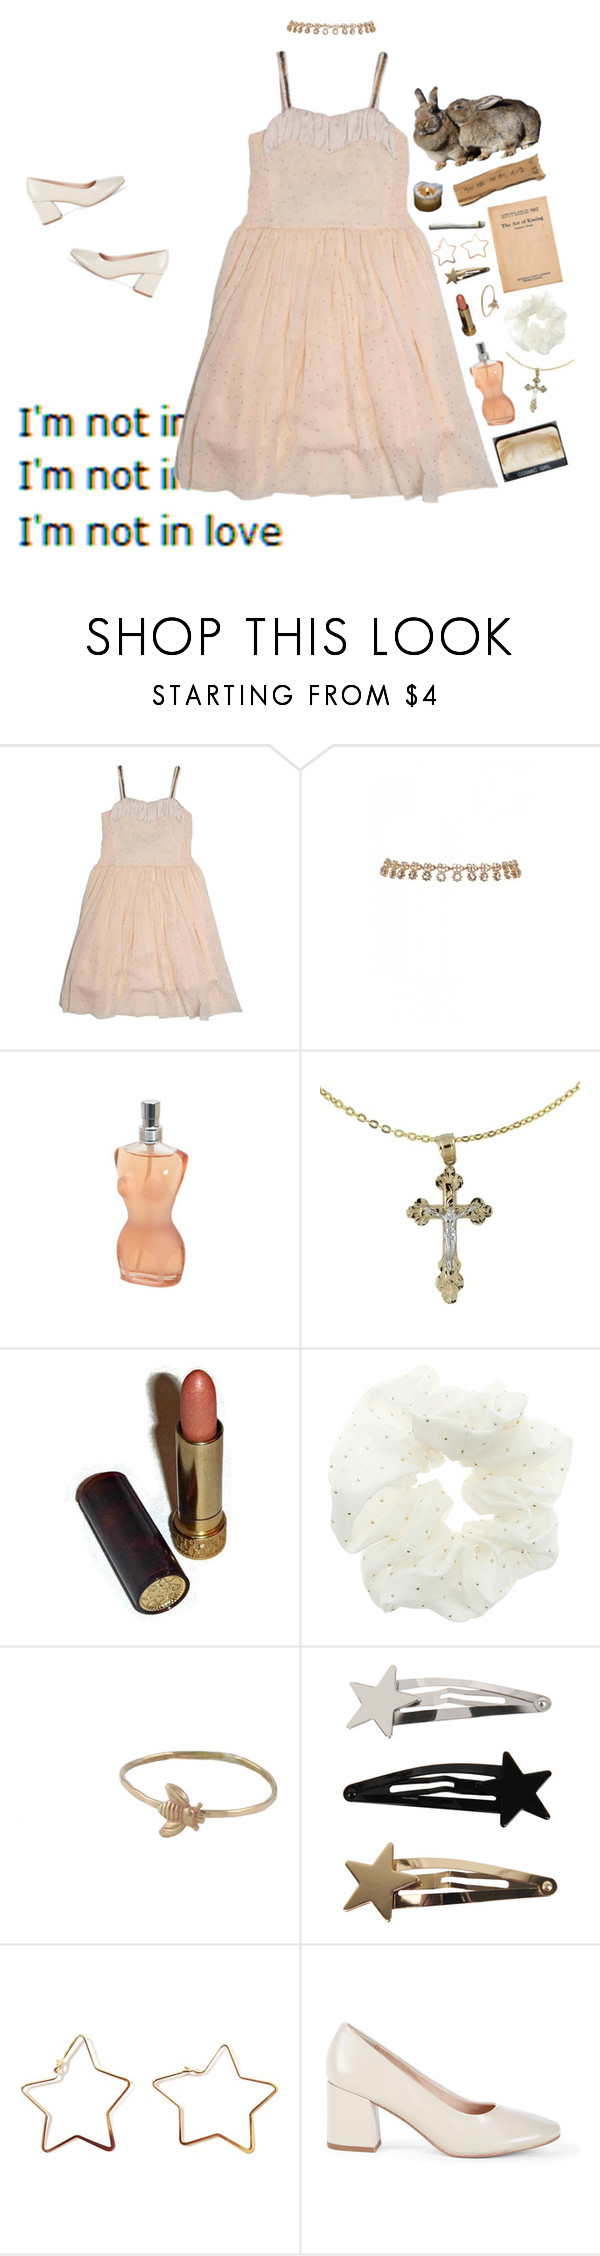 """""""was she asking for it ? was she asking nice ?"""" by filthangel ❤ liked on Polyvore featuring NARS Cosmetics, Jean-Paul Gaultier, Avon, Topshop, Peggy Li and Sole Society"""